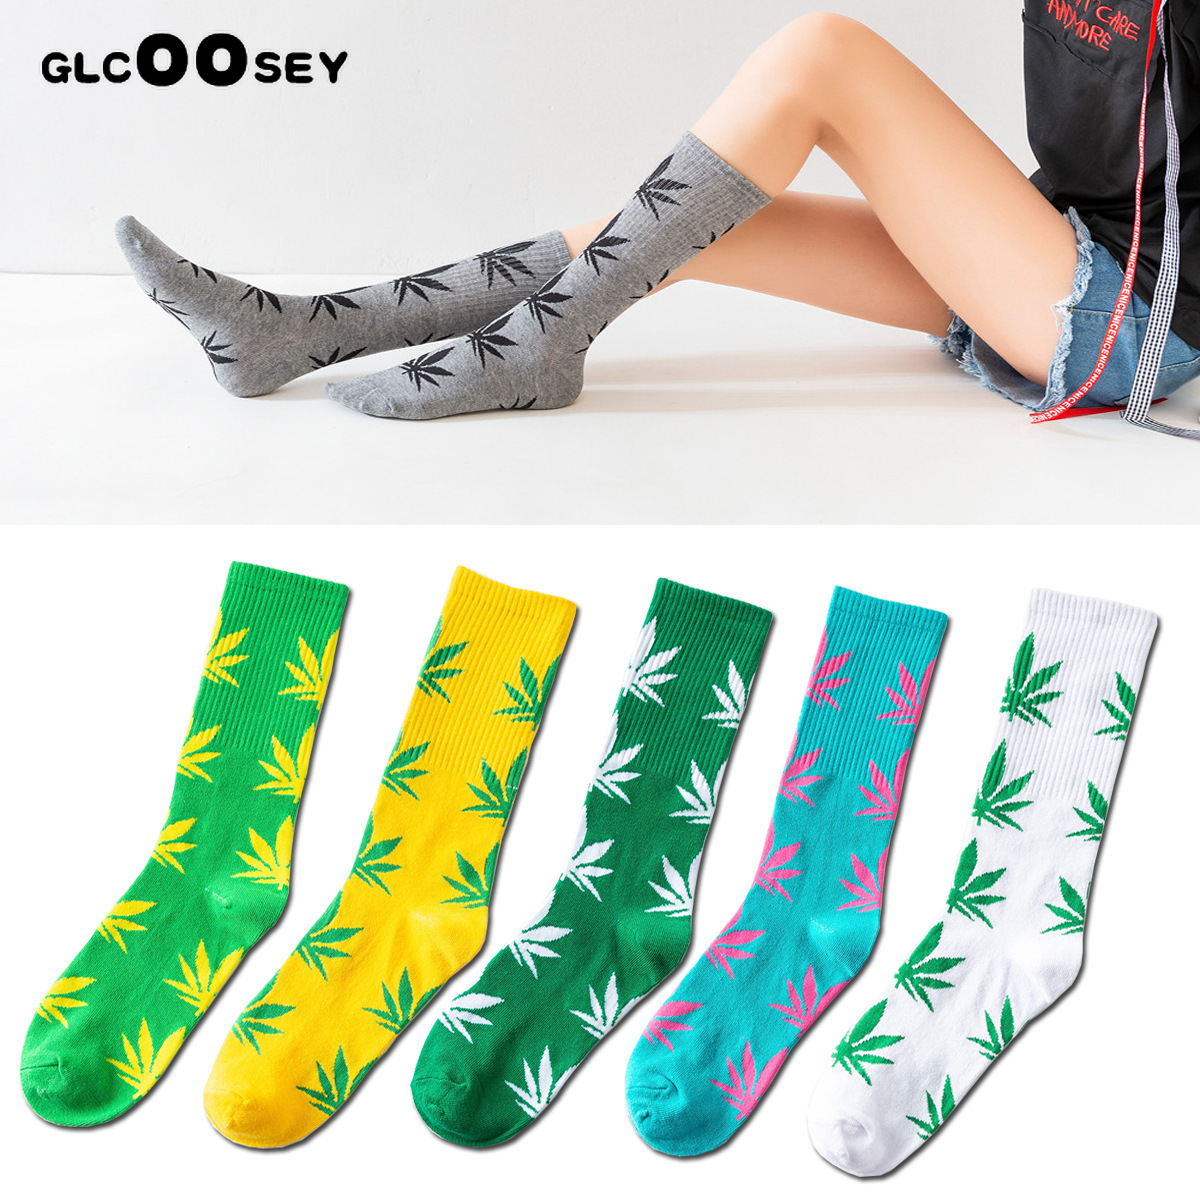 Fashion 1Pair Comfortable High Quality Cotton Socks Hemp Leaf Maple Leaves Casual Long Weed Crew Socks Spring And Autumn